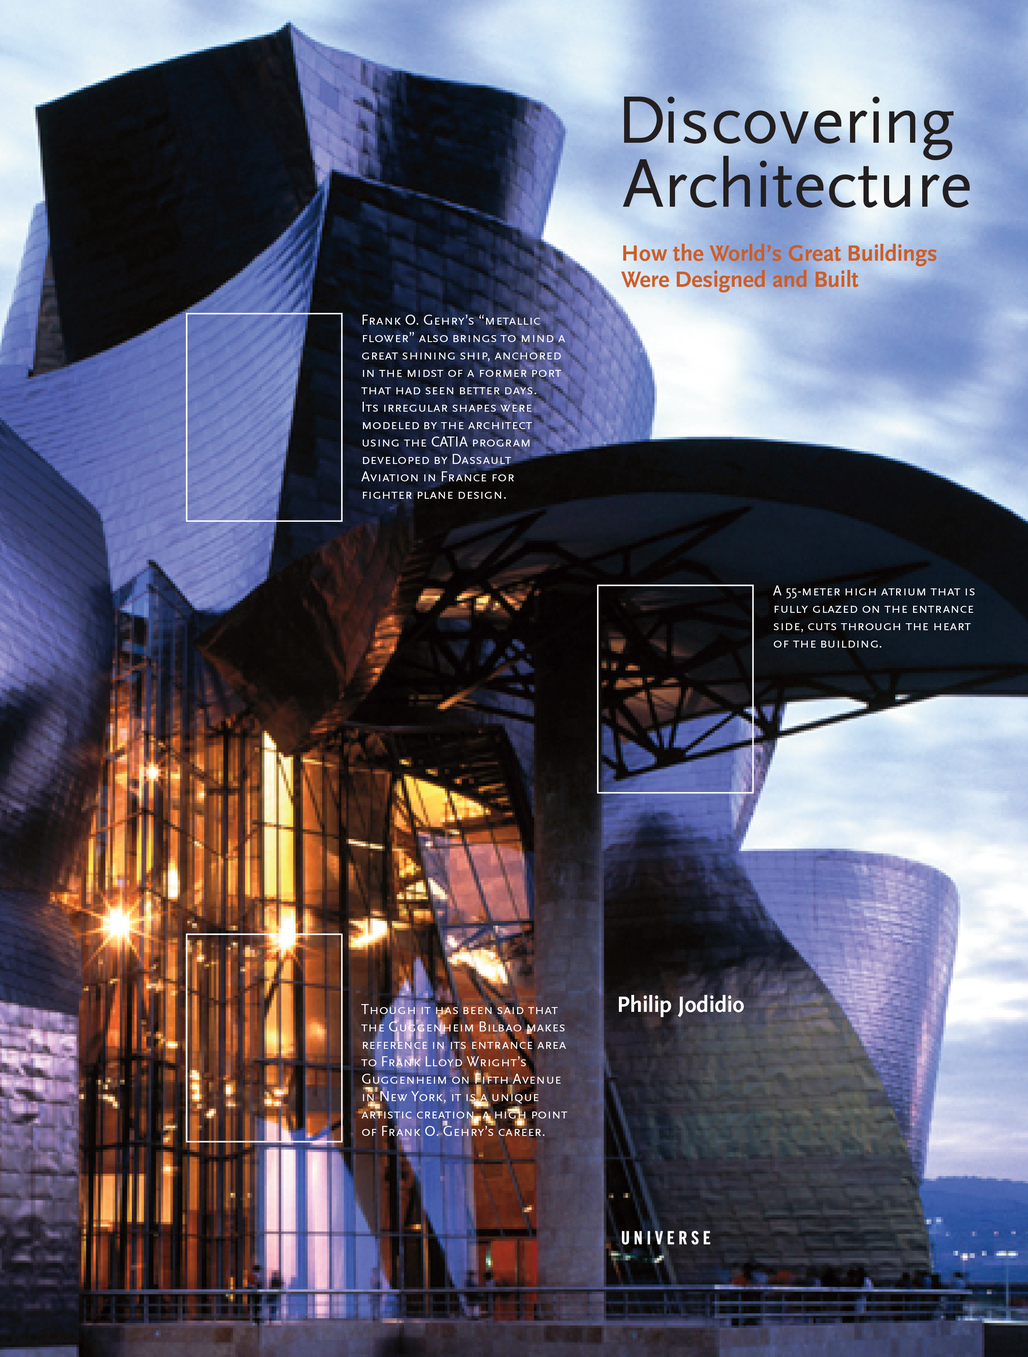 ® Discovering Architecture by Philip Jodidio, Universe Publishing, 2013.